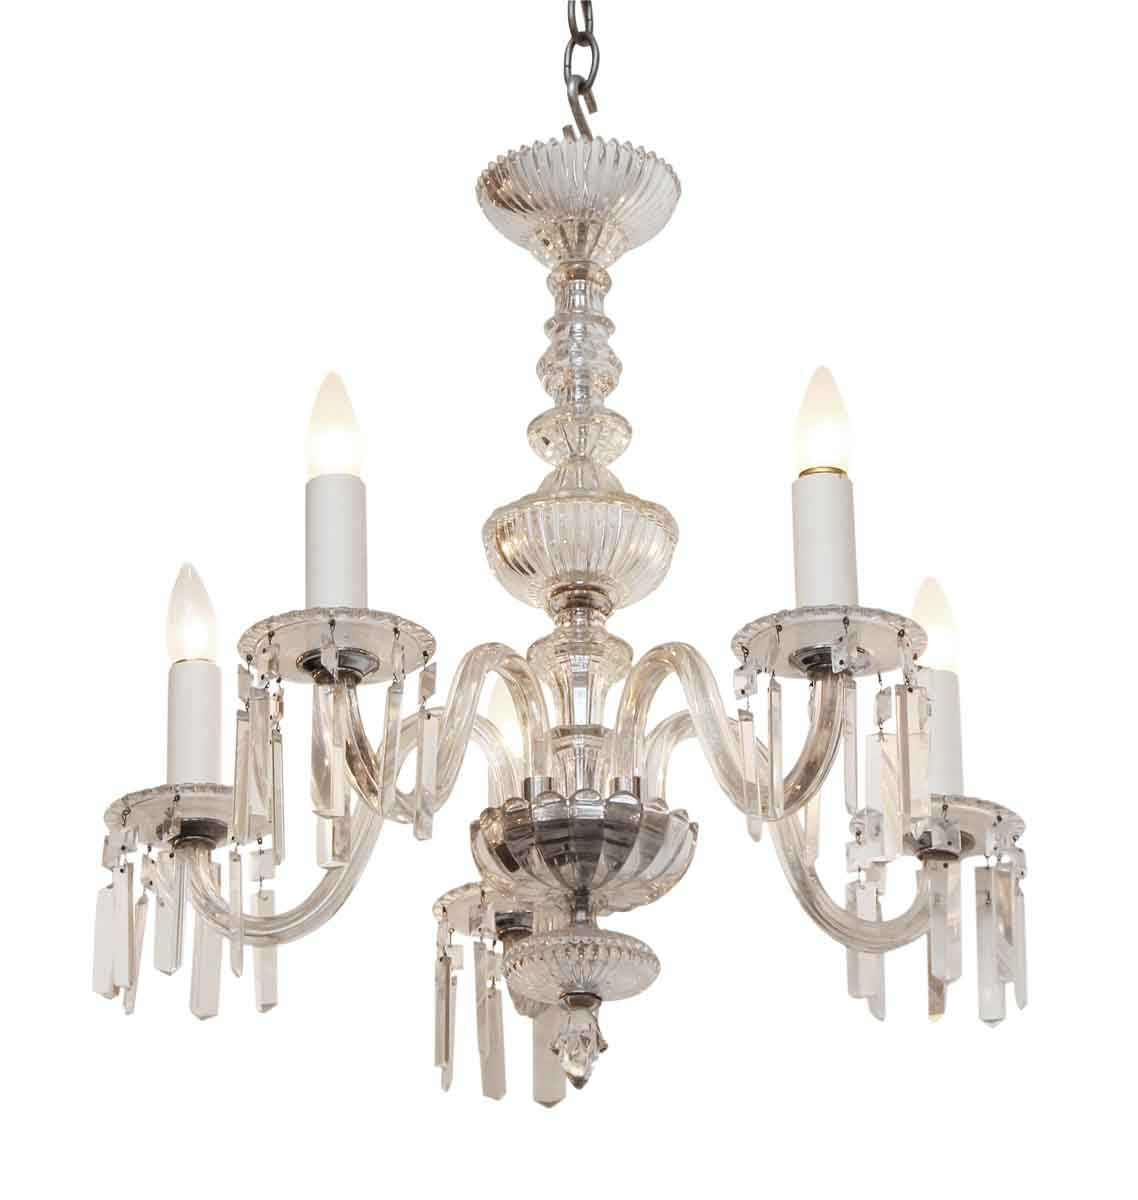 20th Century Five Arm Crystal Chandelier